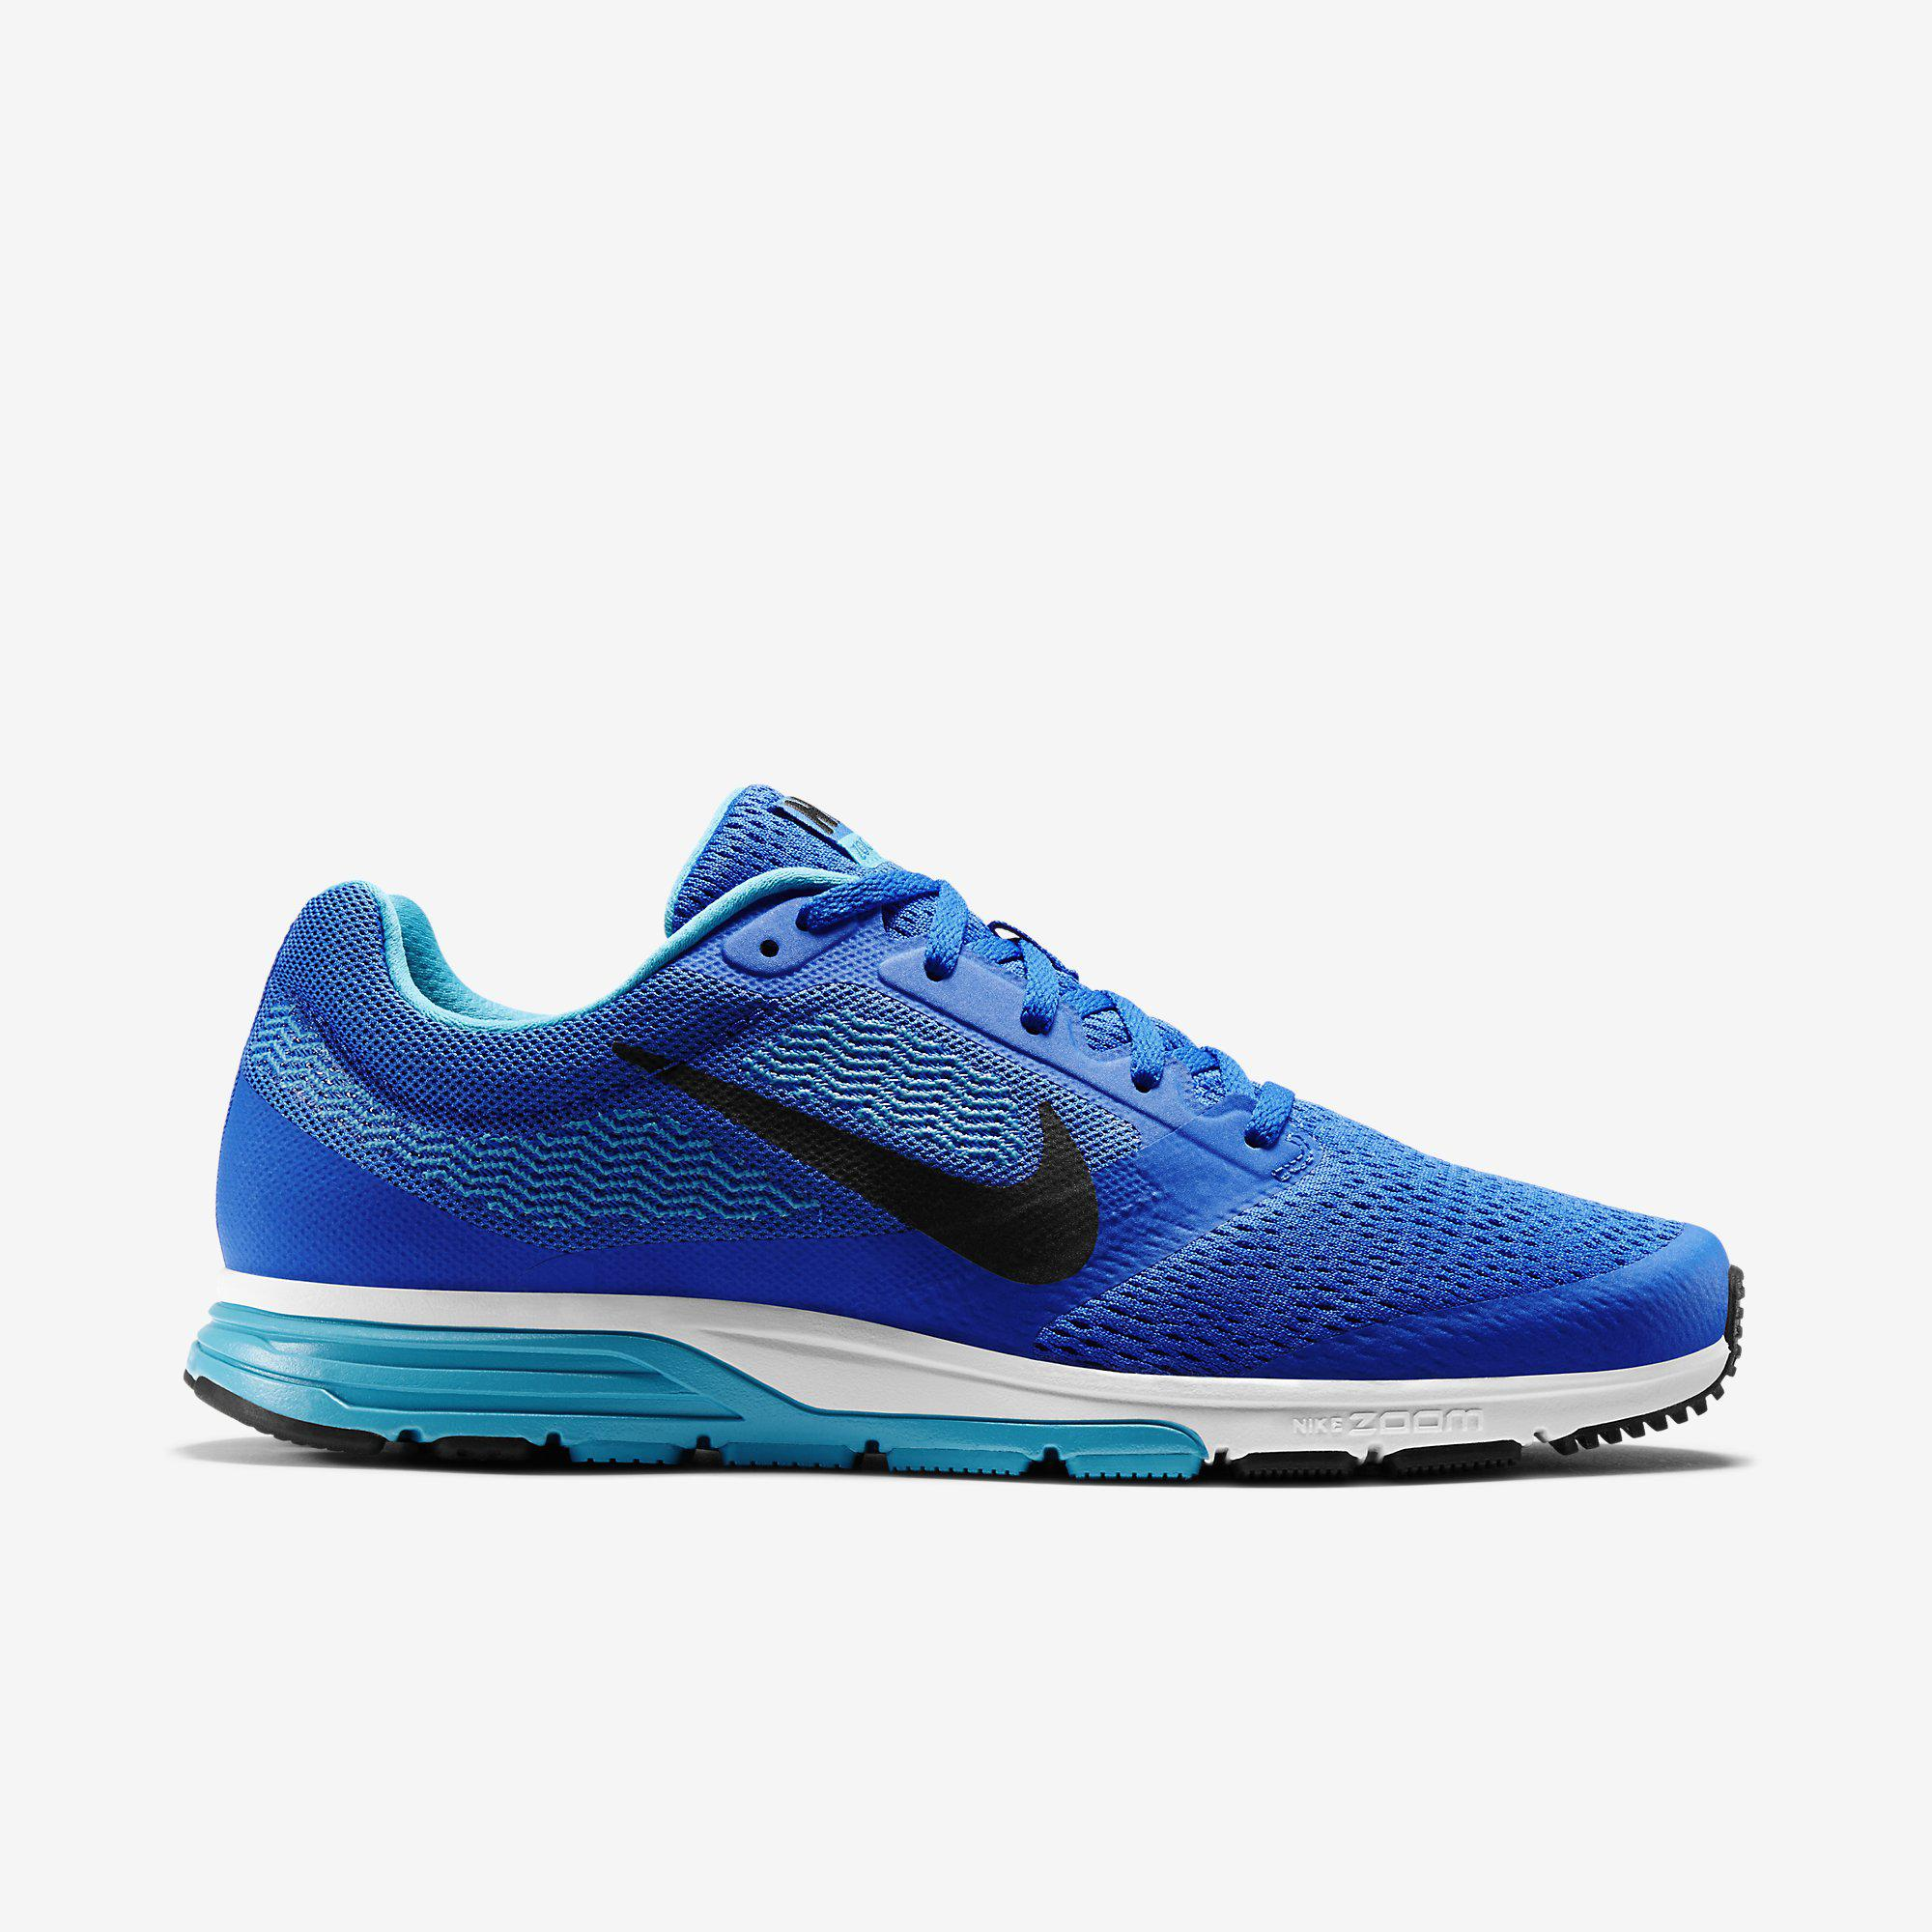 3f360f6b4f9 Nike Mens Air Zoom Fly 2 Running Shoes - Blue - Tennisnuts.com